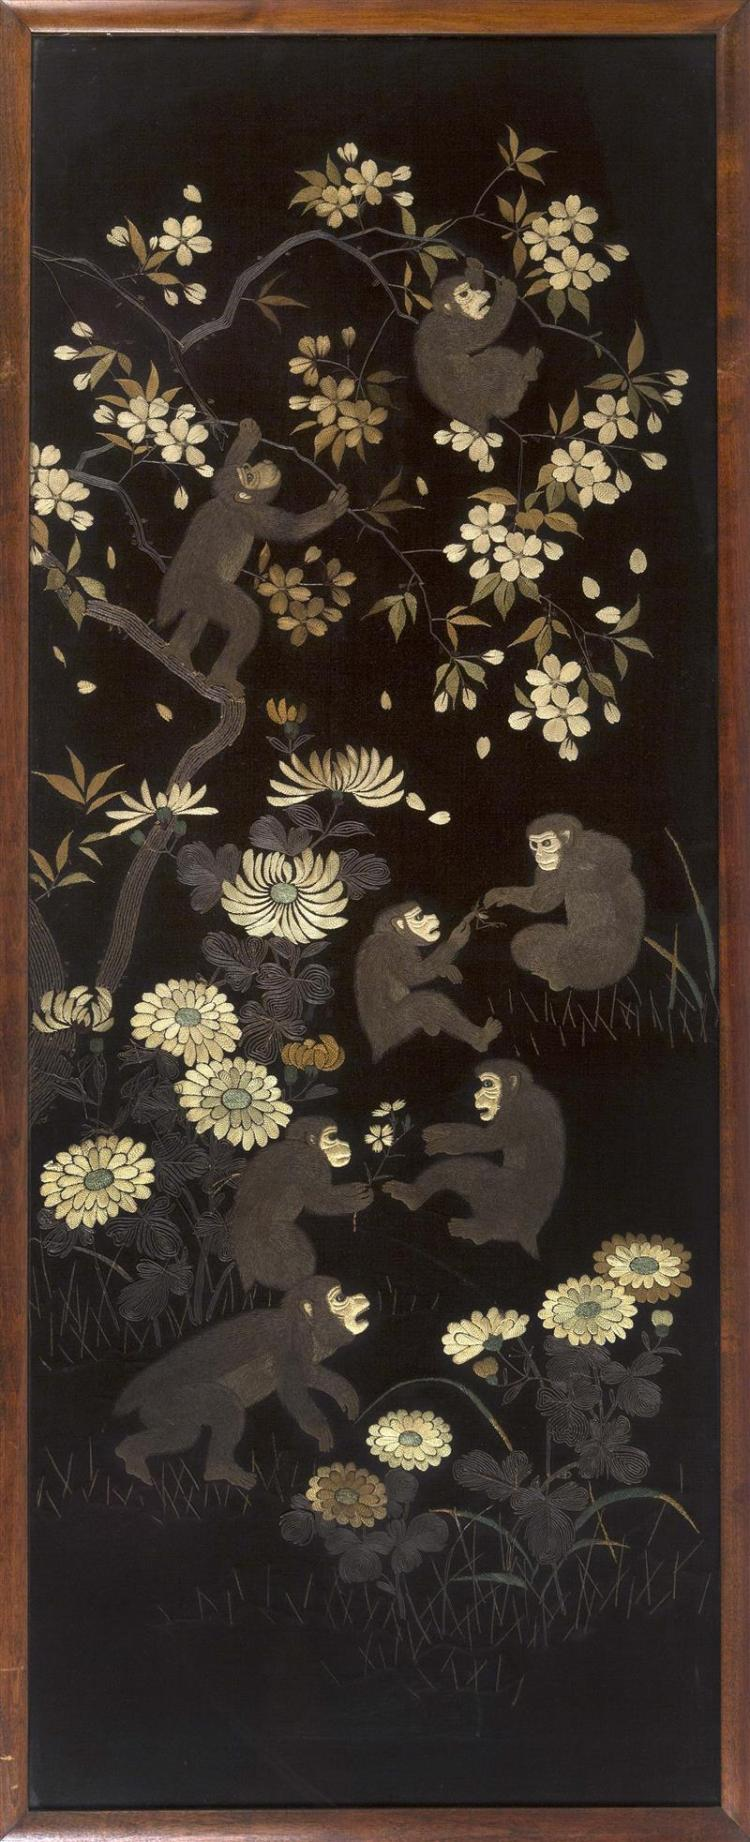 FRAMED NEEDLEWORK PICTURE Depicting seven monkeys in a chrysanthemum and plum blossom landscape. 48